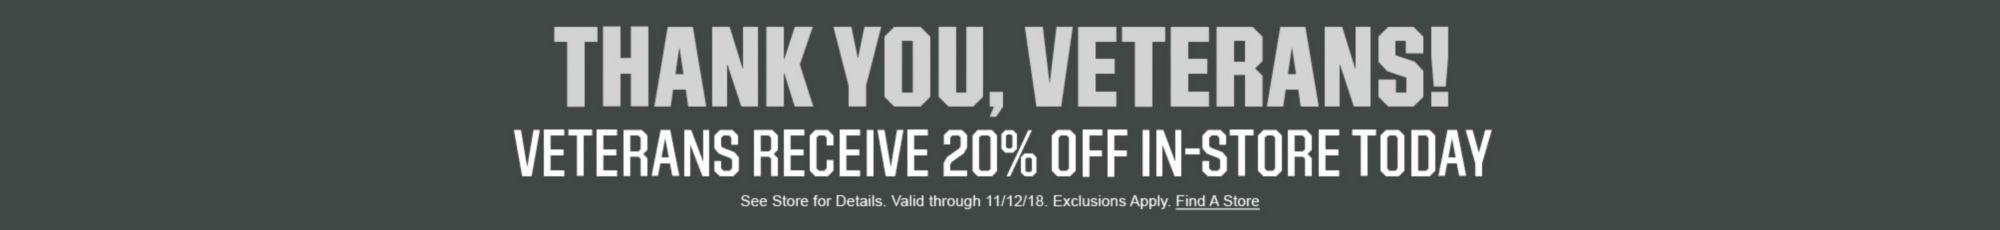 Thank You, Veterans! Veterans Receive 20% Off In-Store Today - See Store For Details. Valid through 11/12/18. Exclusions Apply. Find a Store